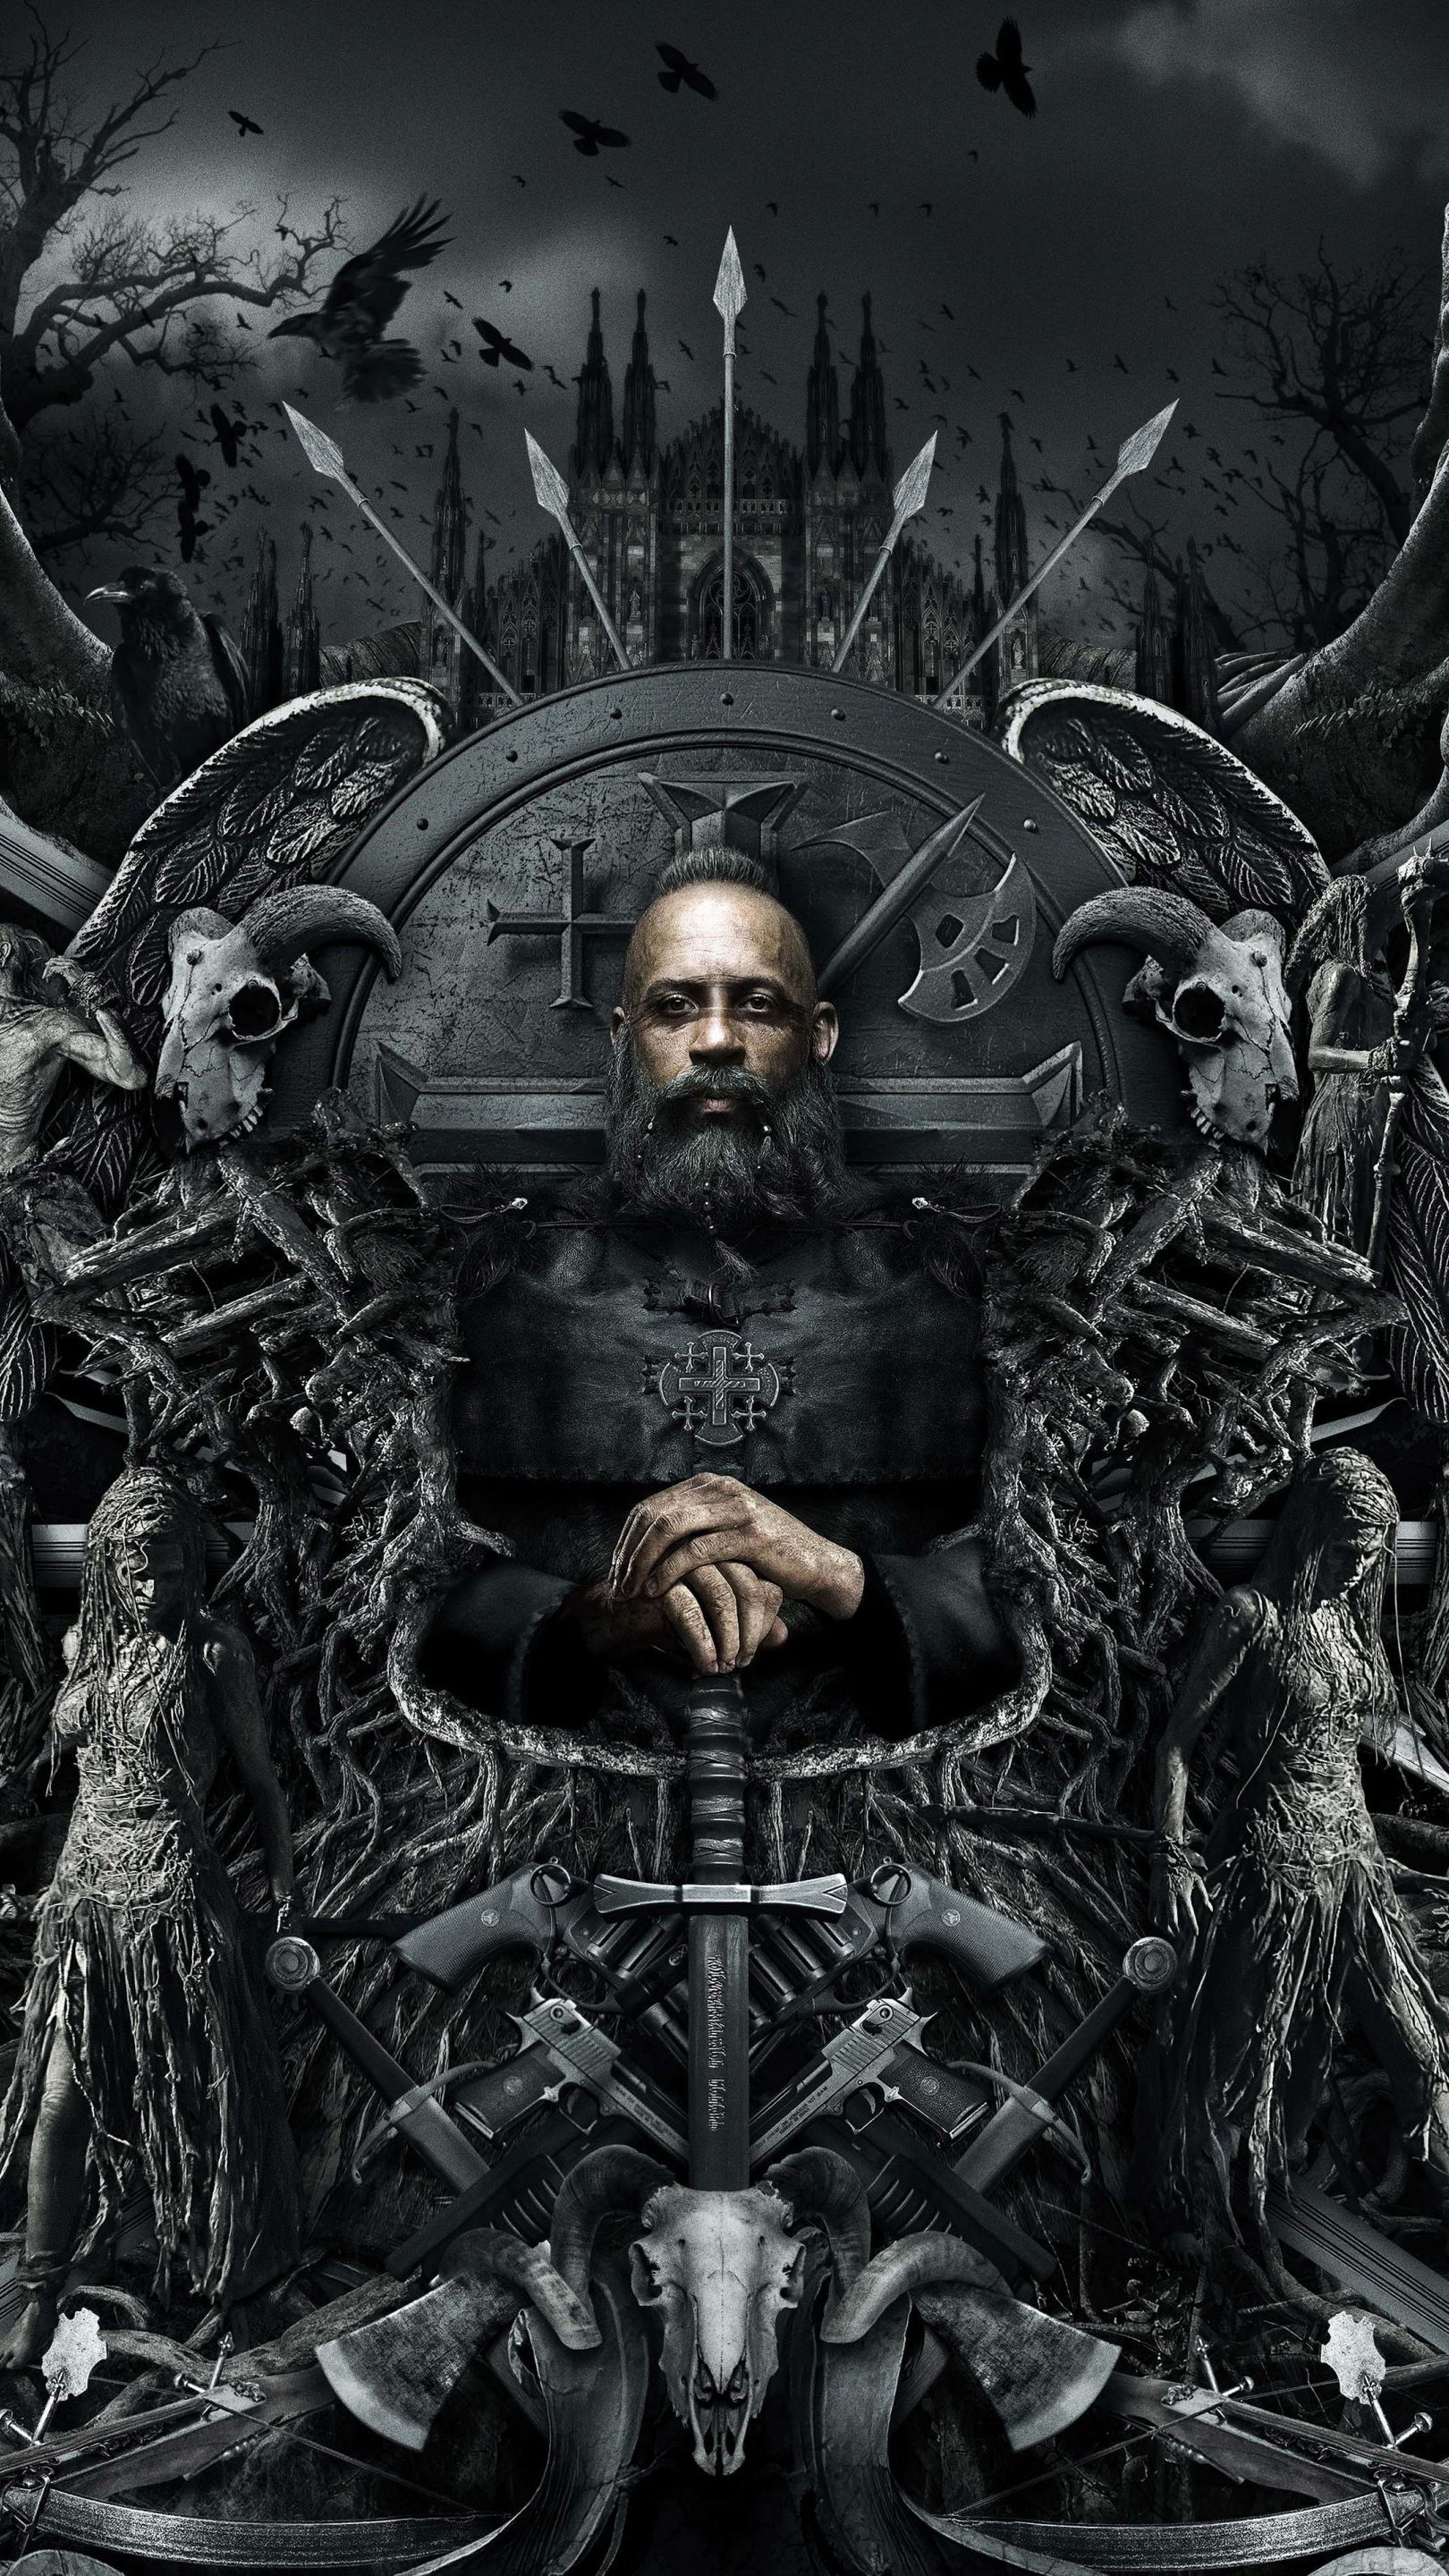 The Last Witch Hunter Mobile Hd Wallpaper Zombie Wallpaper 8k Wallpaper Joker Wallpapers